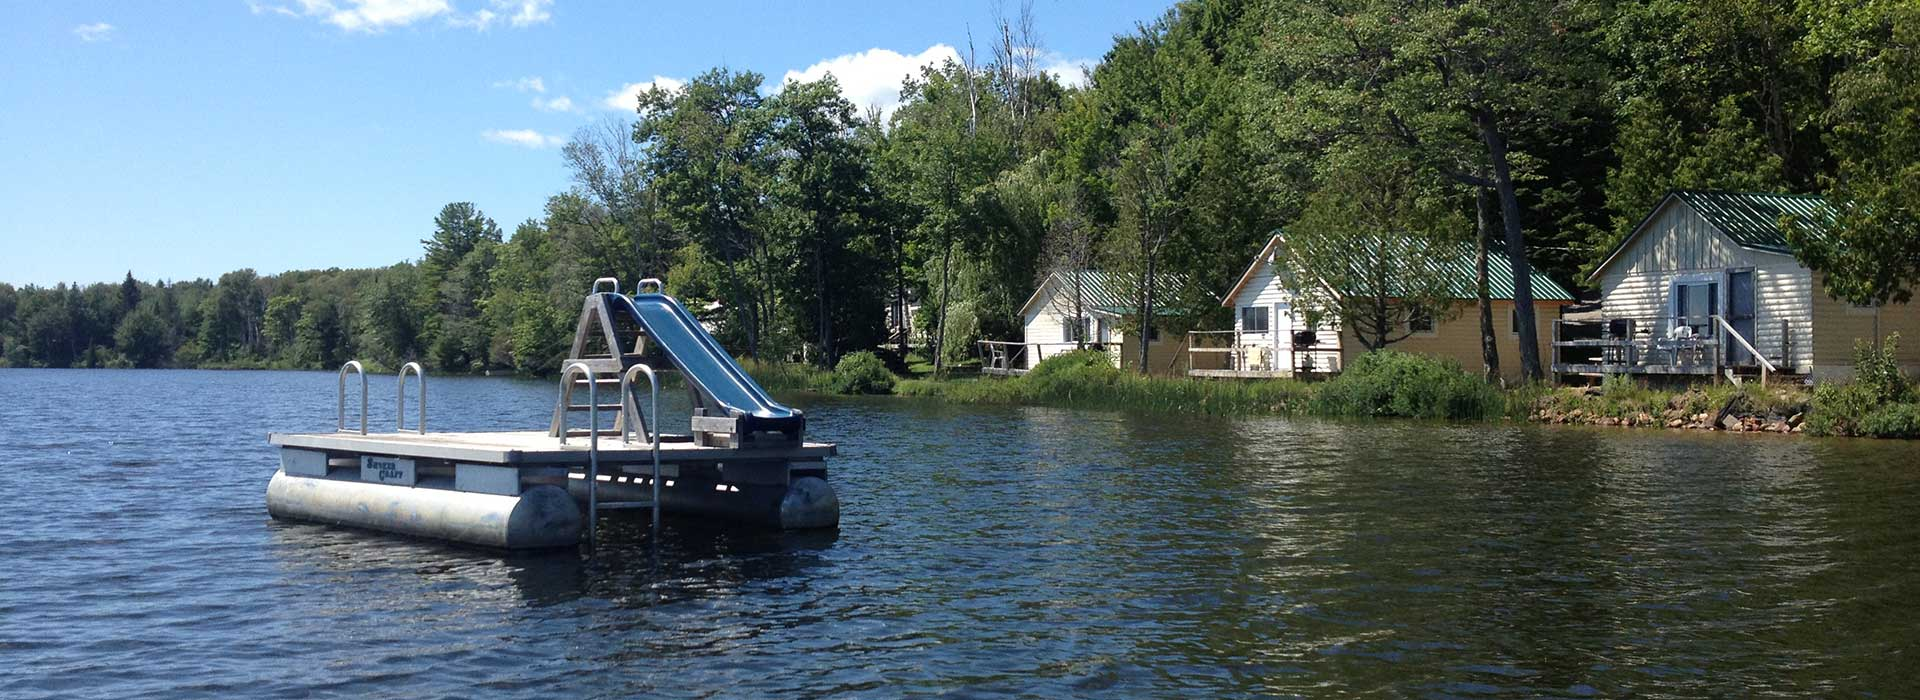 Cottage resorts in algoma northern ontario canada for Ontario canada fishing resorts